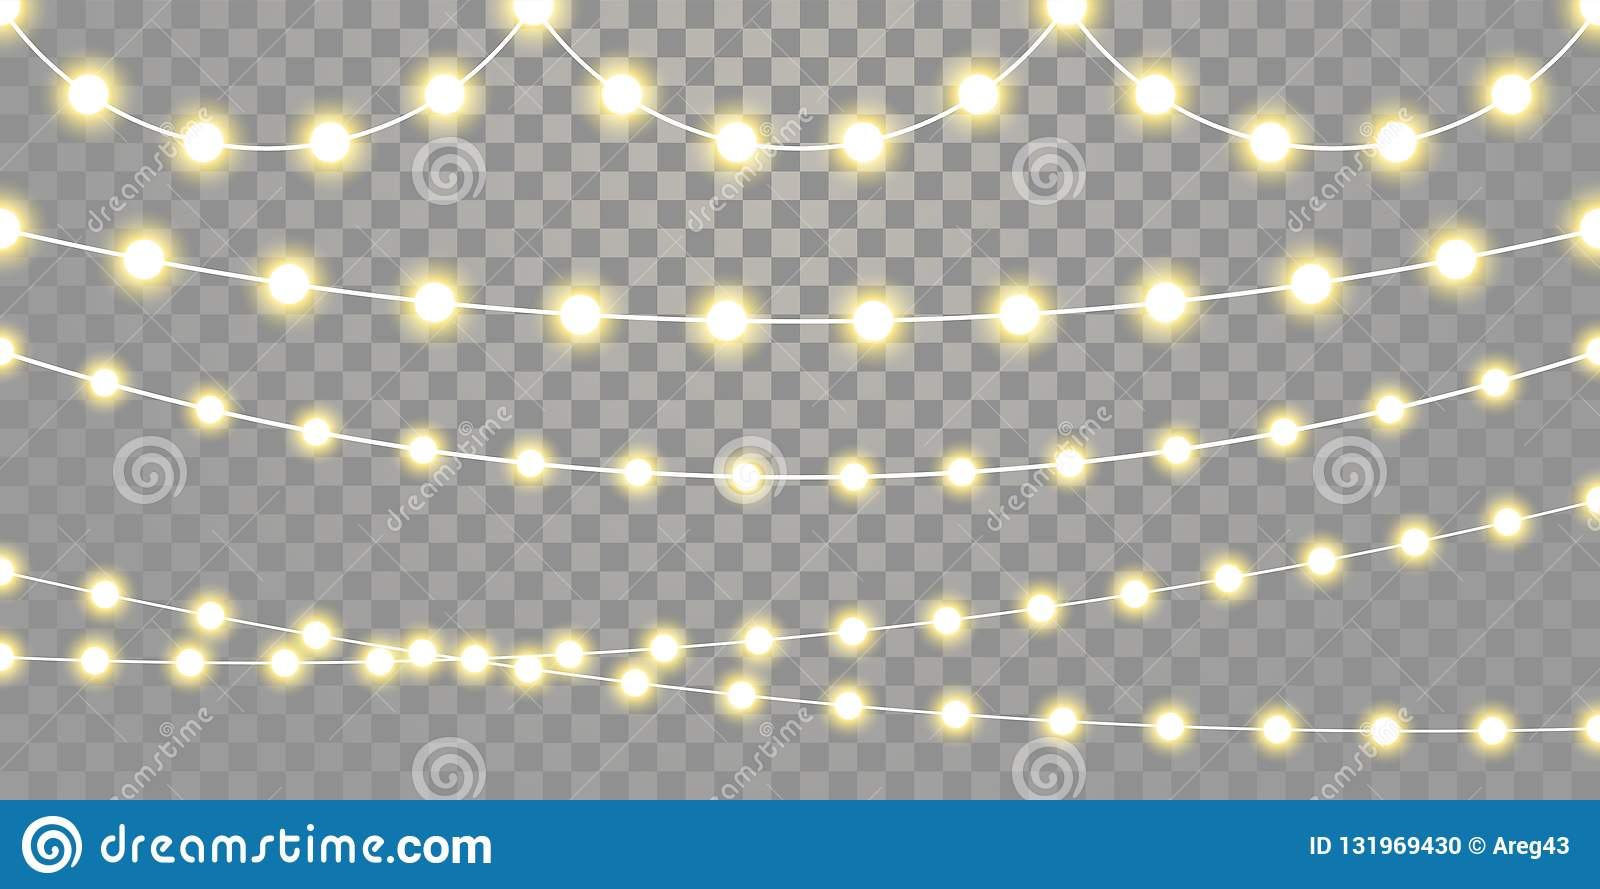 Christmas Lights Transparent Background.Christmas Lights Isolated Garland Lamp Strings On